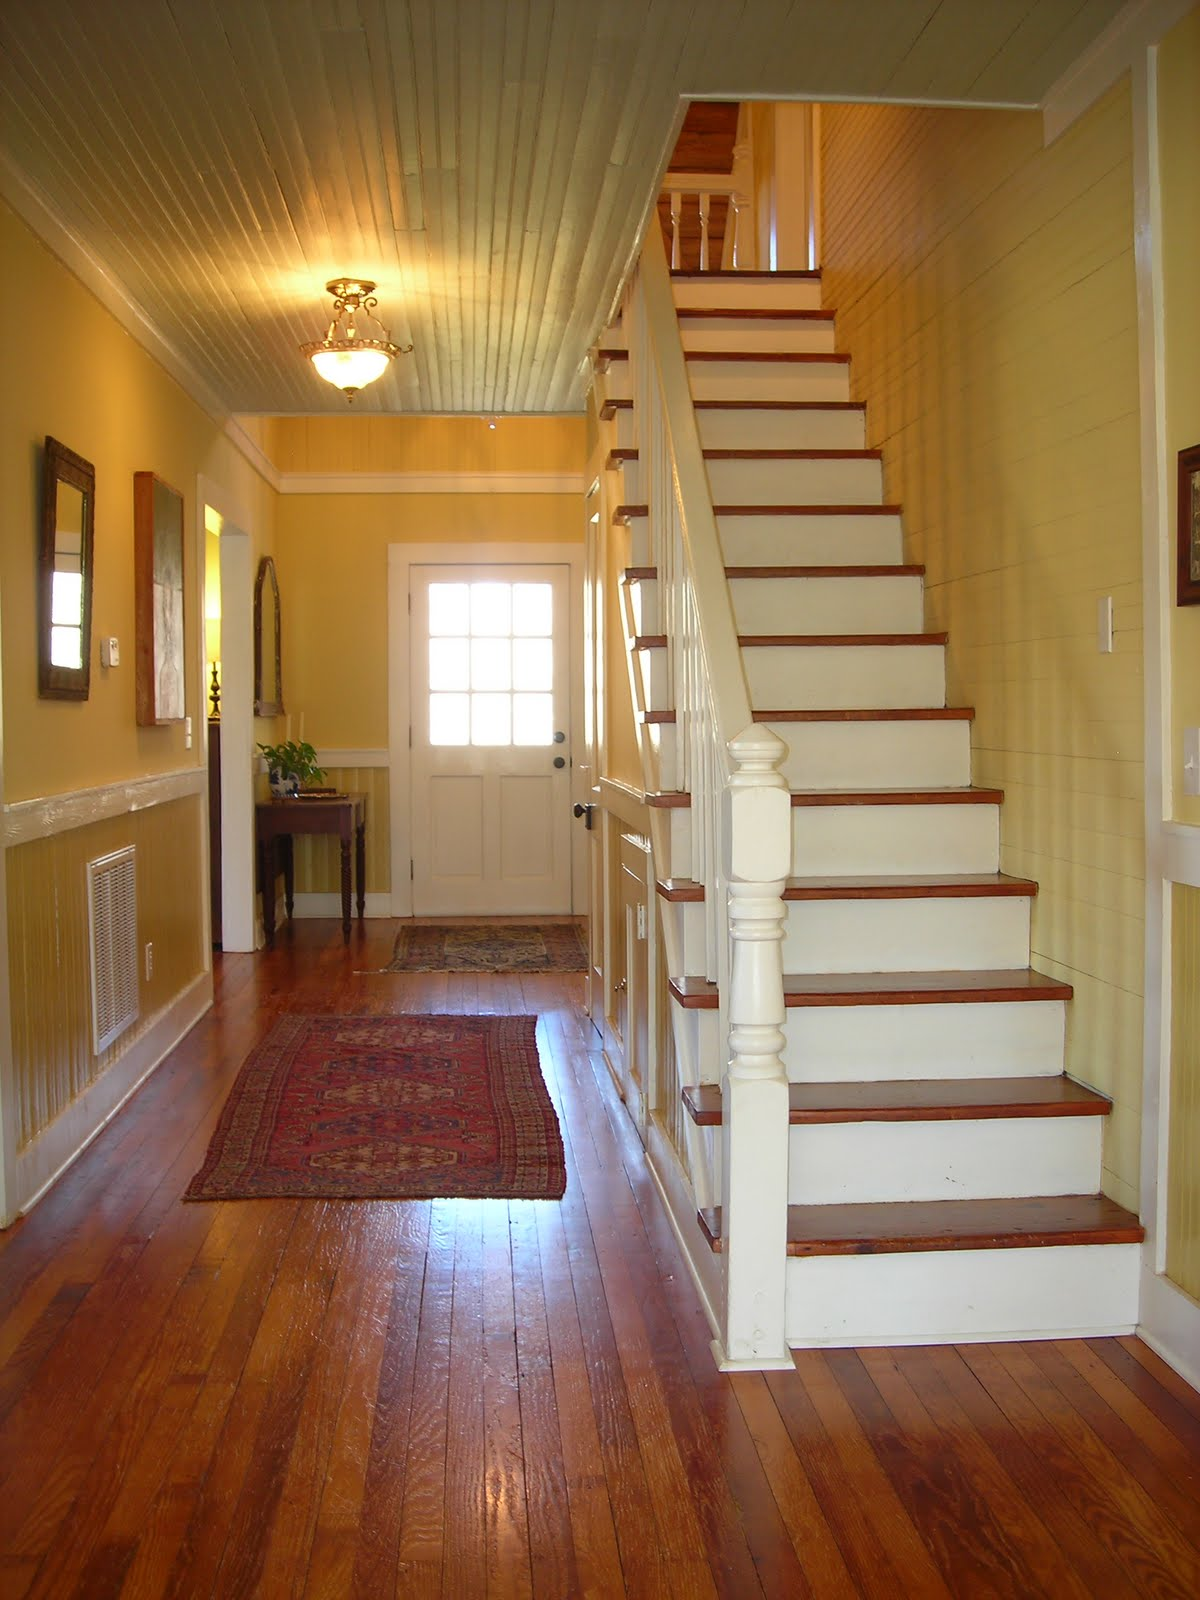 Dressing The Stairs